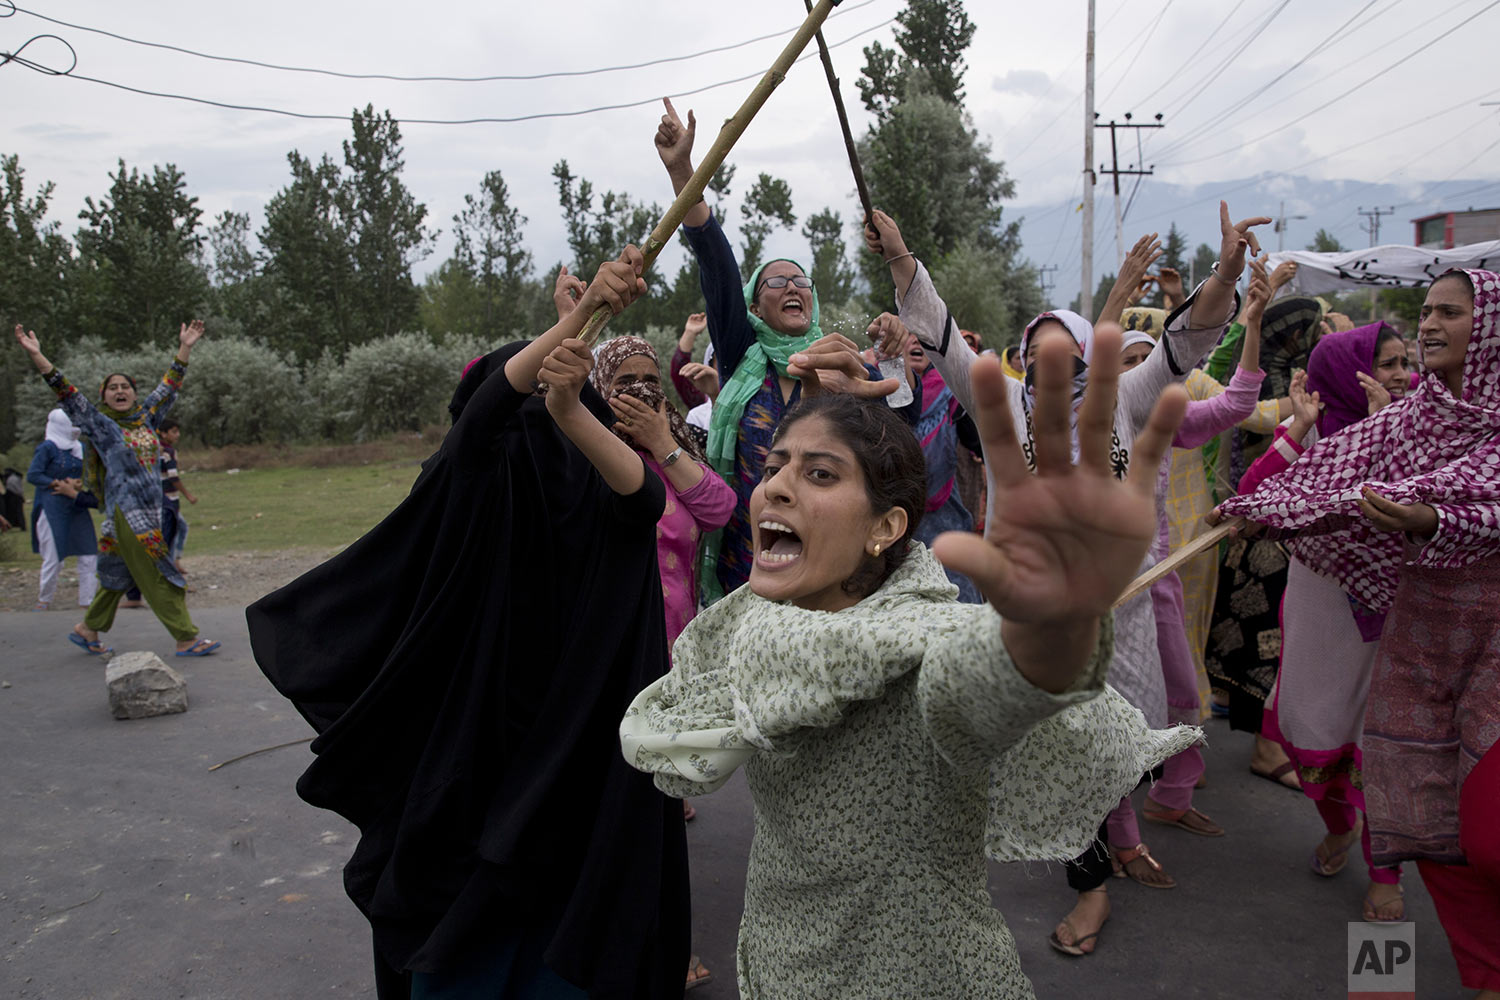 In this Friday, Aug. 9, 2019, photo, Kashmiri Muslim women shout slogans as Indian policemen fire teargas and live ammunition in the air to stop a protest march in Srinagar, Indian controlled Kashmir. (AP Photo/ Dar Yasin)